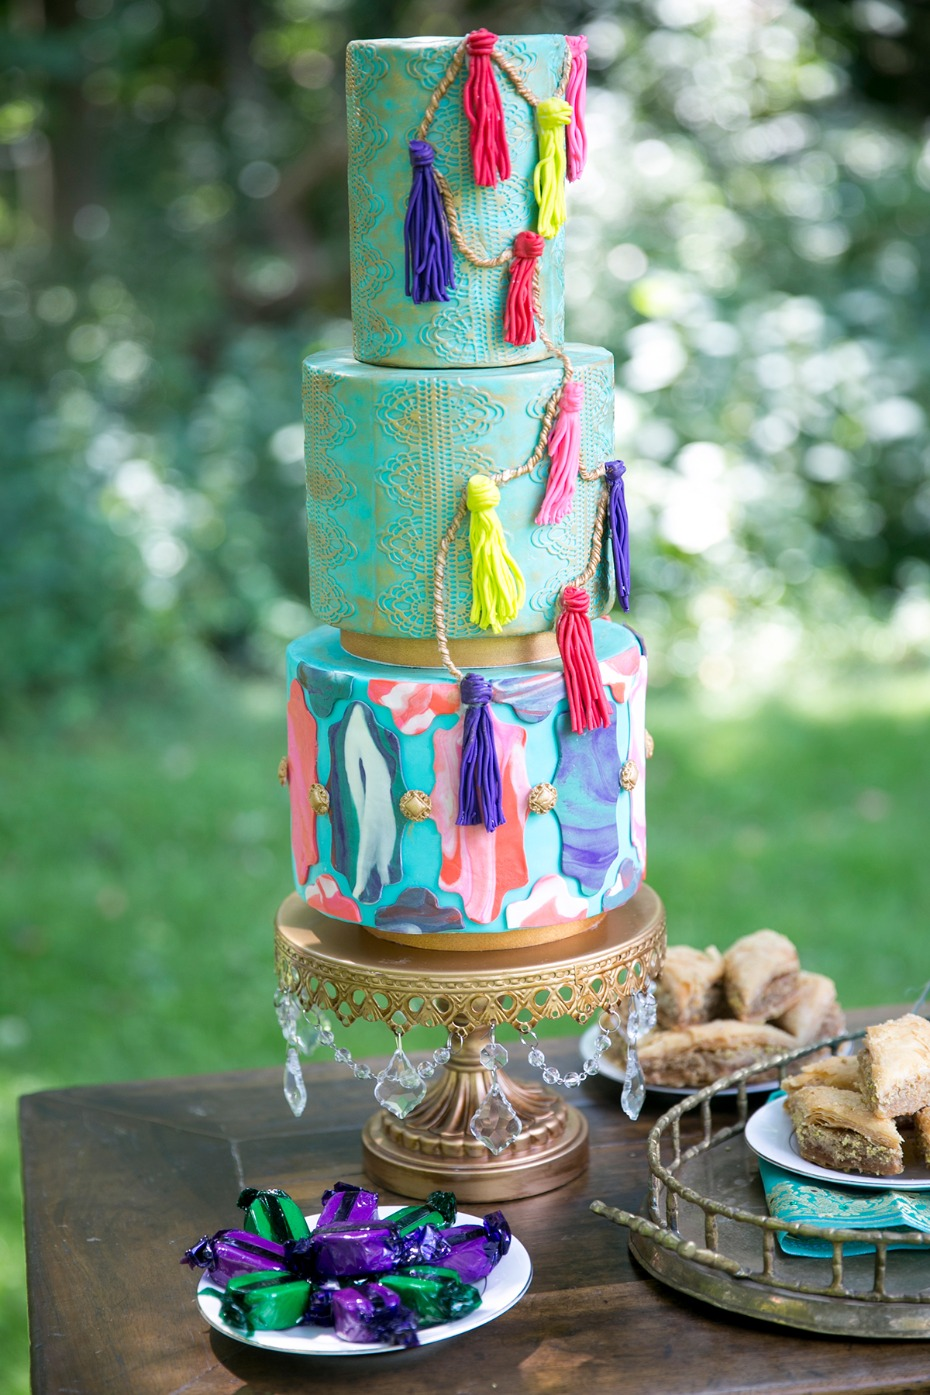 whimsical tassel cake in teal and gold